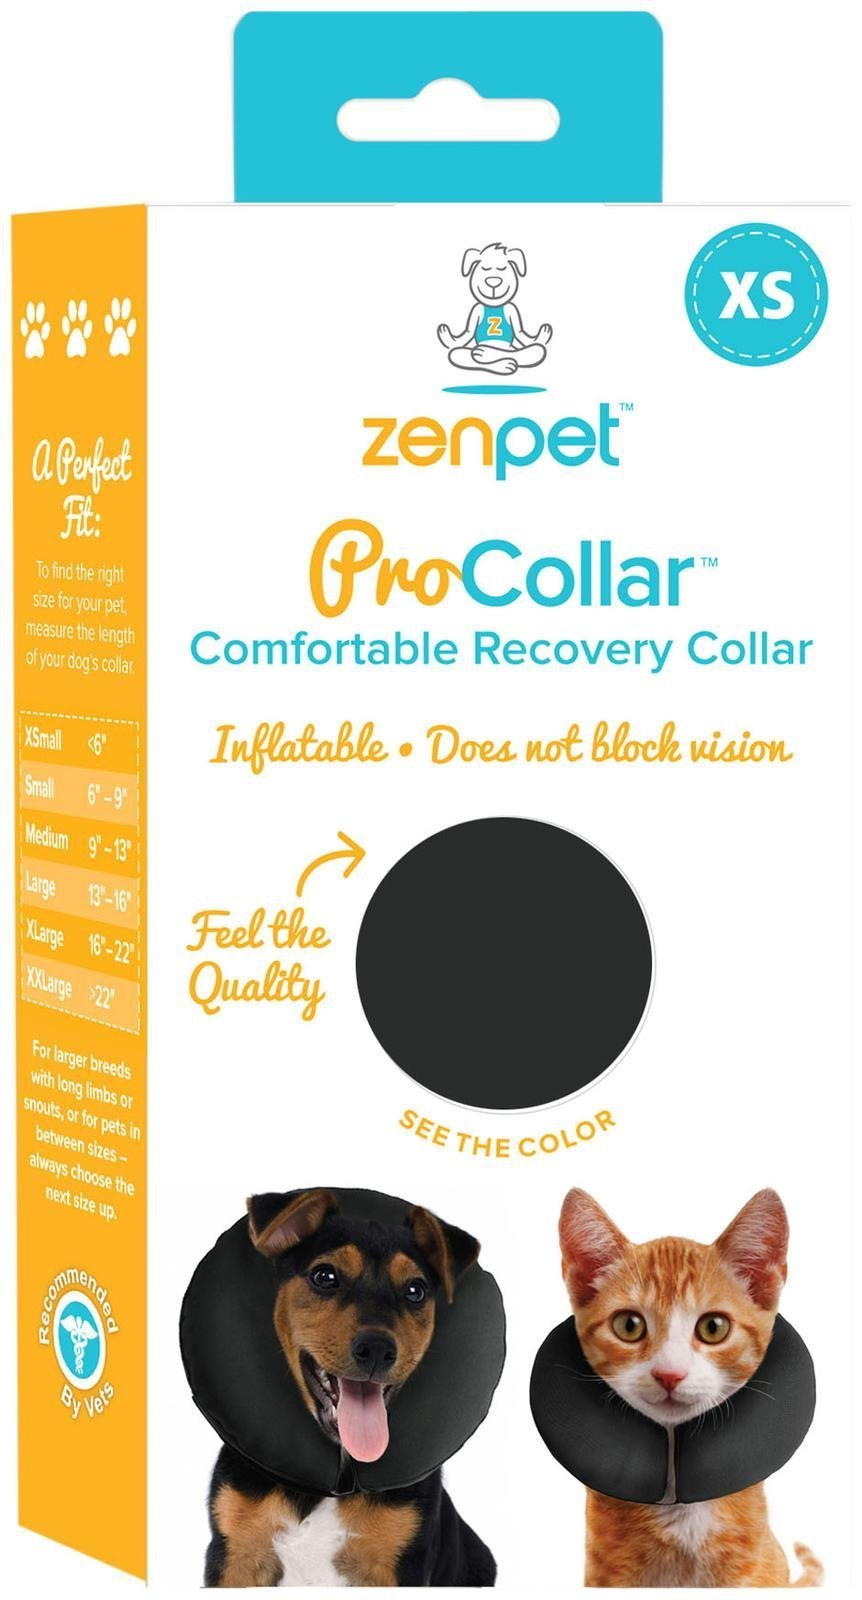 ZenPet ProCollar Pet E-Collar for Dogs and Cats - Comfortable Recovery Collar